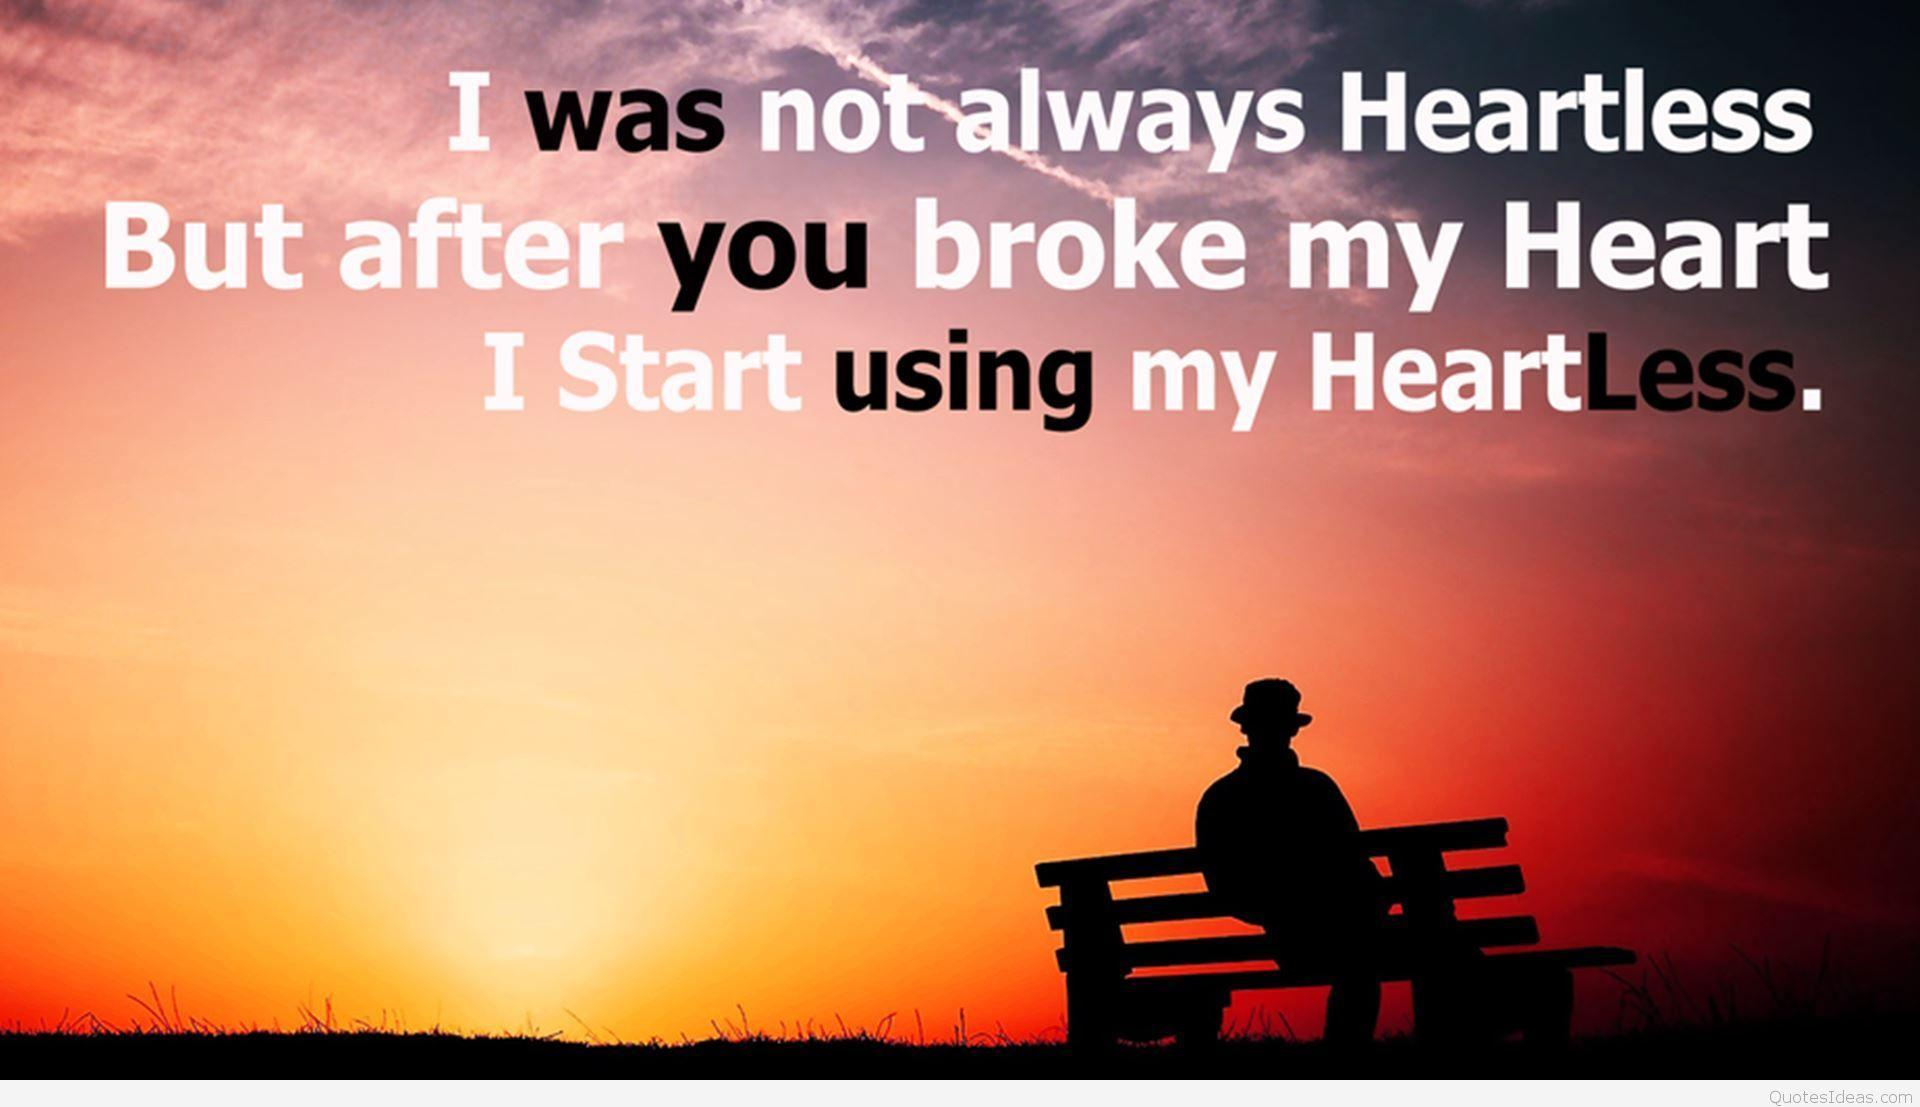 Wallpapers With Broken Heart Quotes Wallpaper Cave